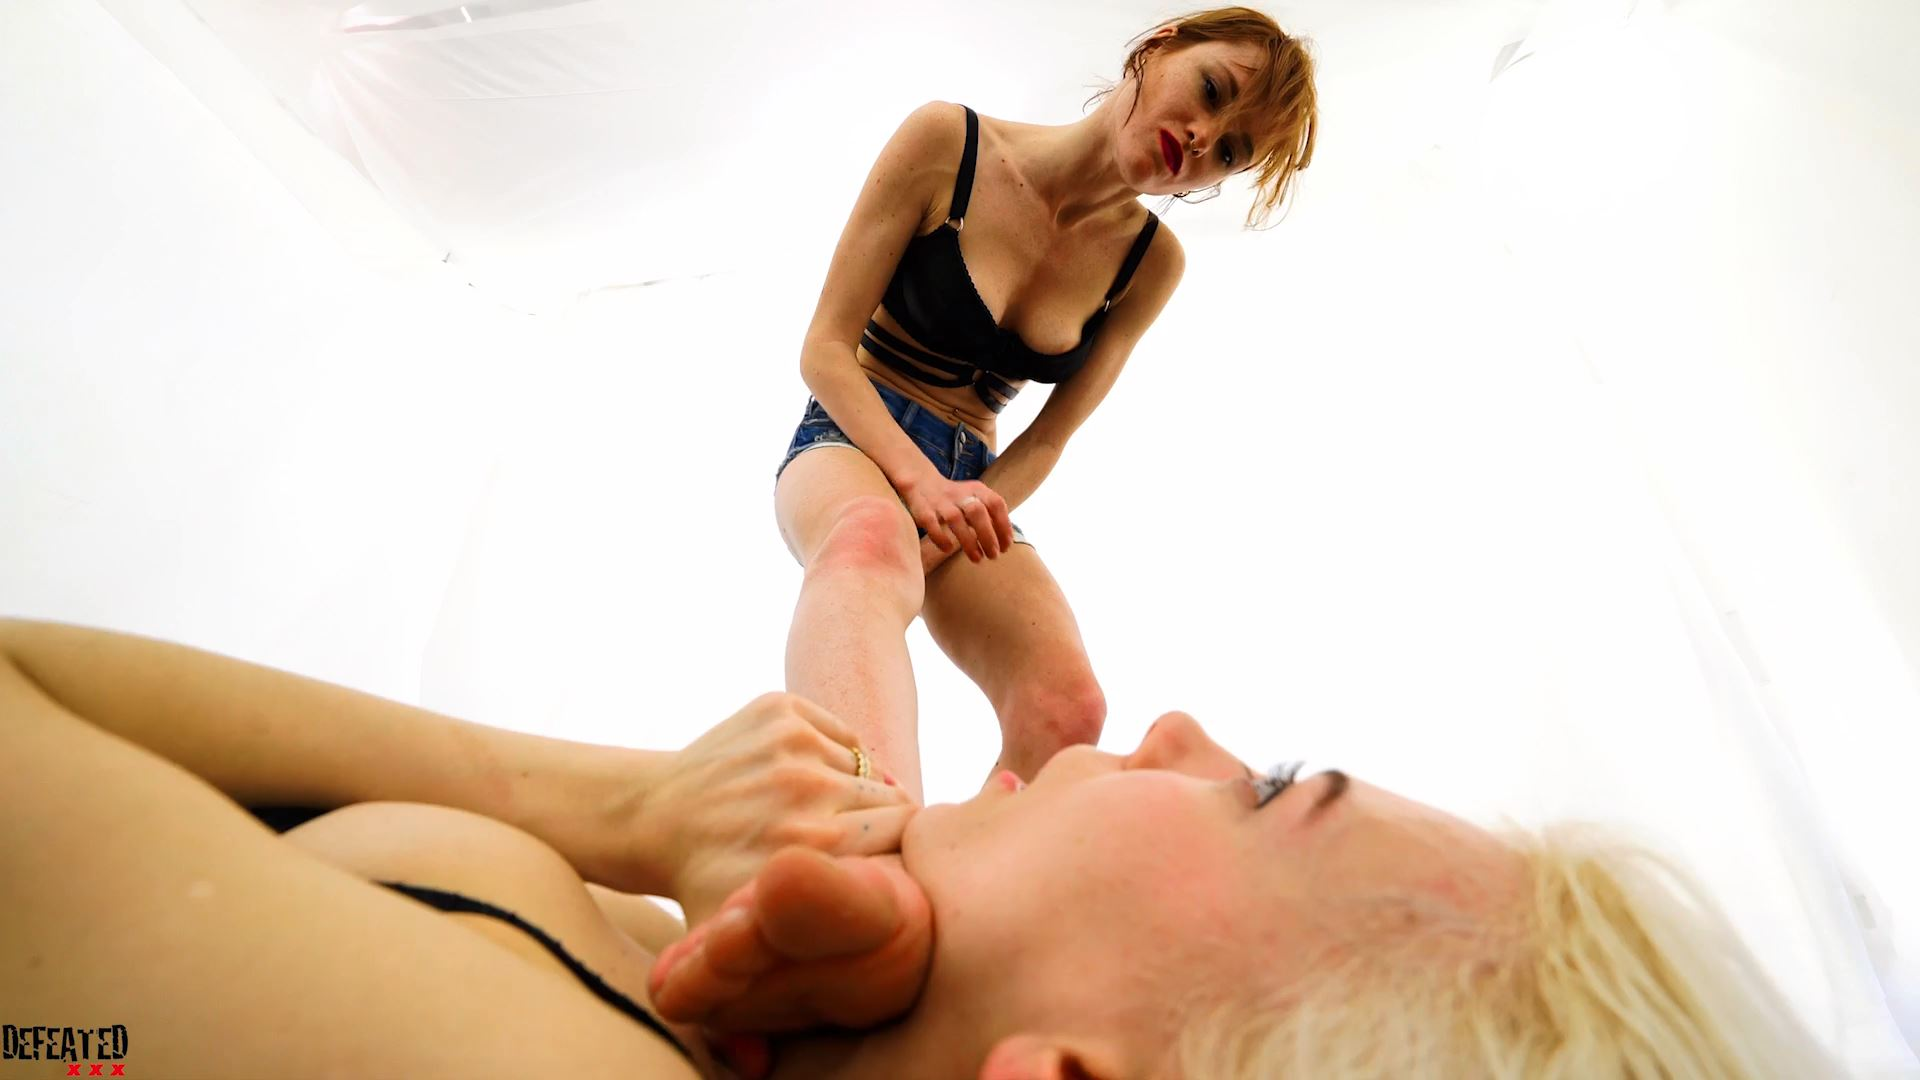 Karate Kicks - Karateka Feet - DEFEATED XXX - FULL HD/1080p/MP4